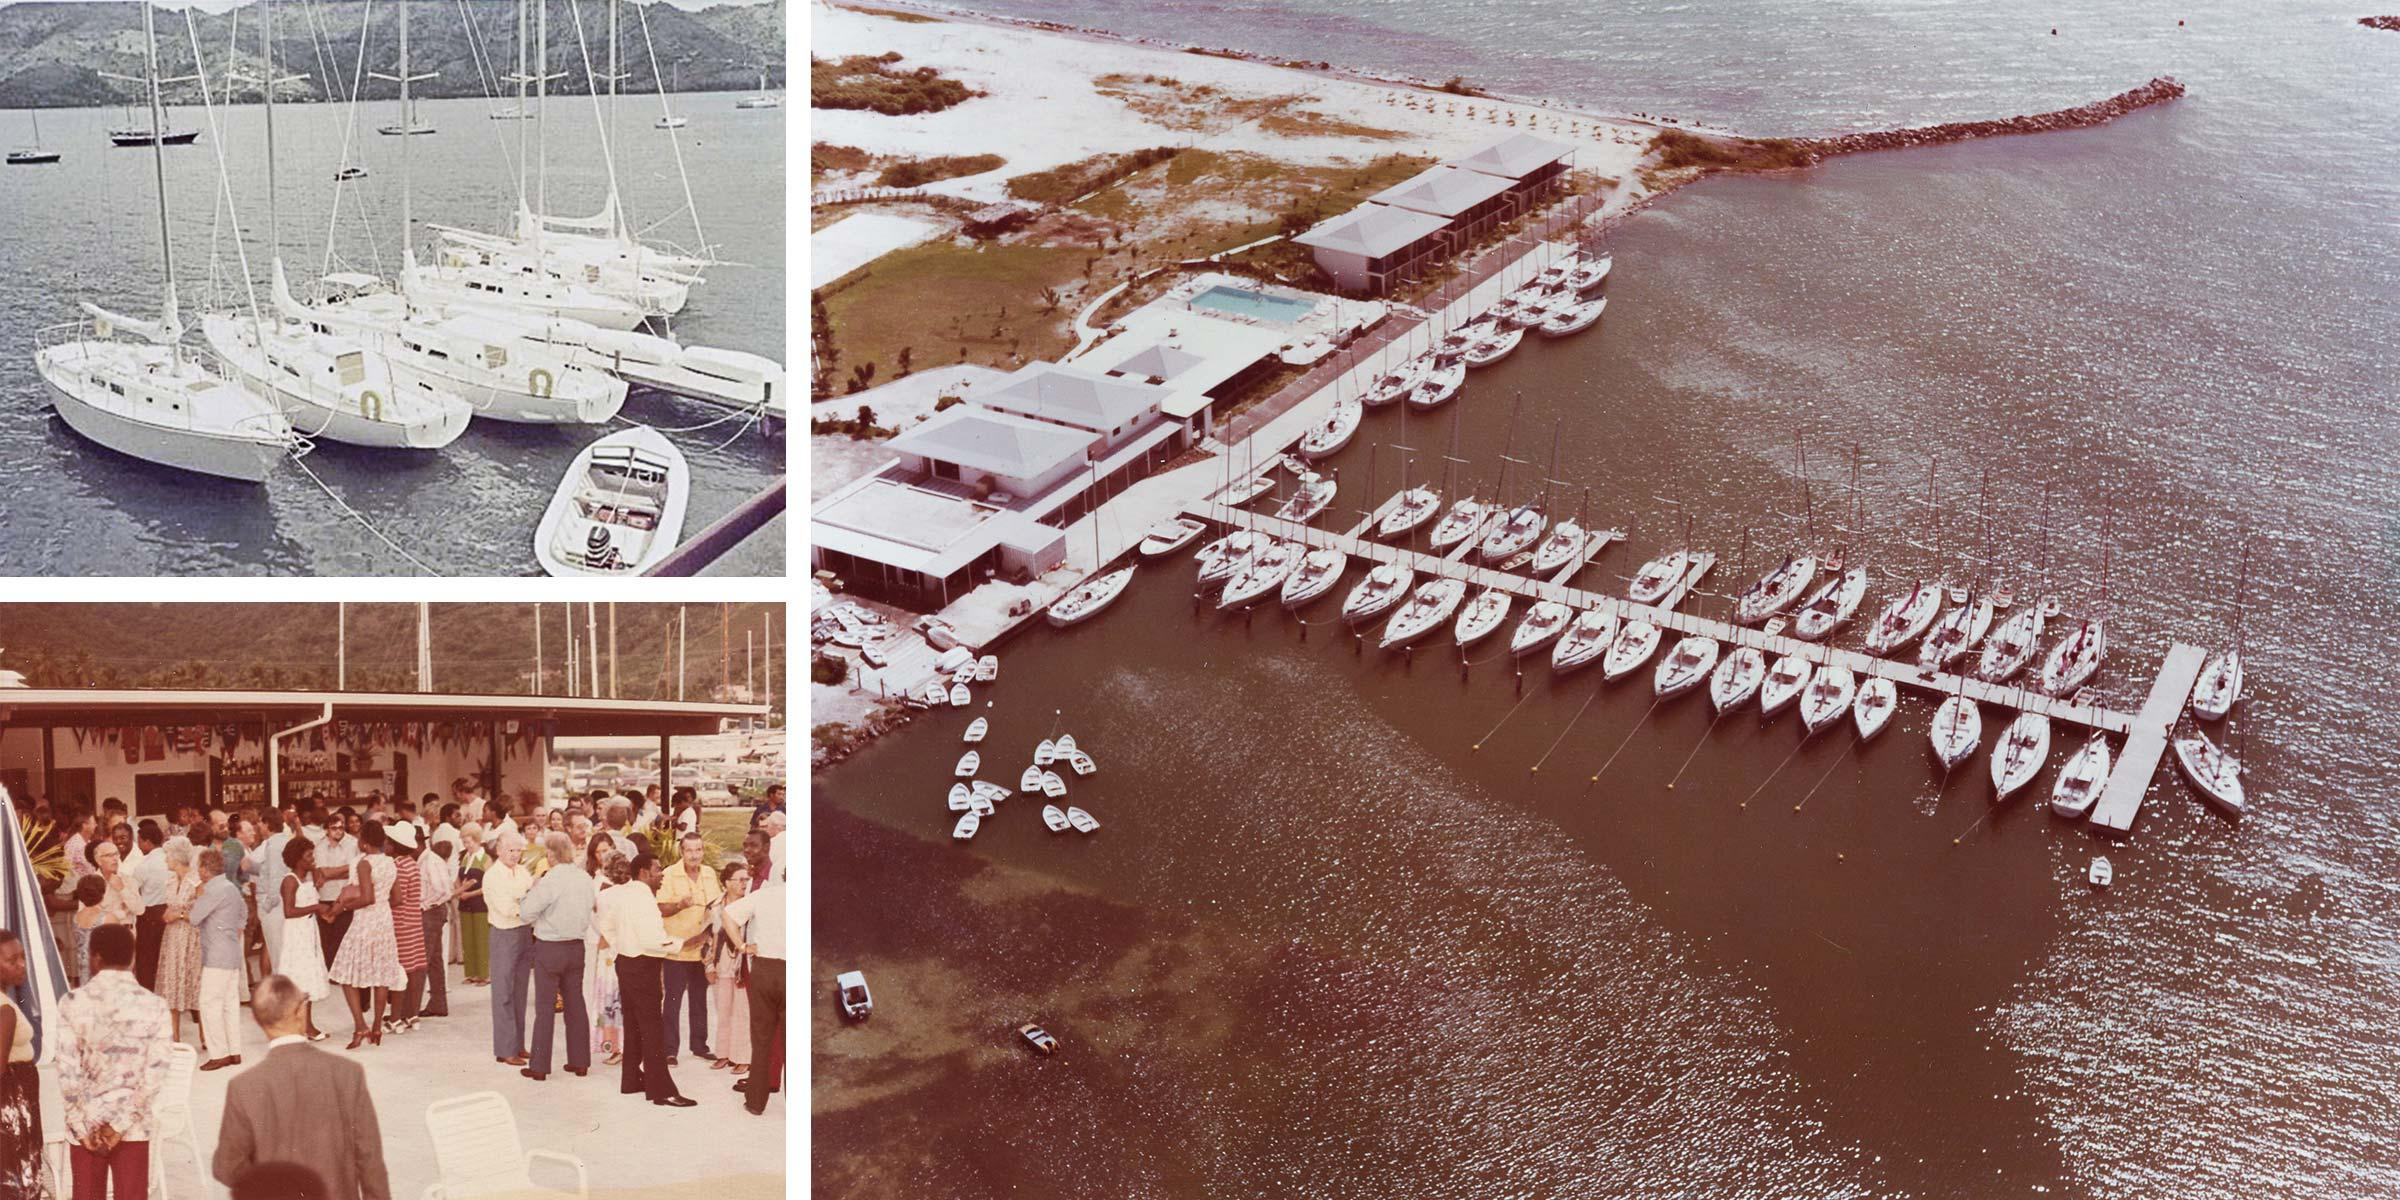 moorings_bvi_base_in_th_1970s_1980s_2400x1200_web